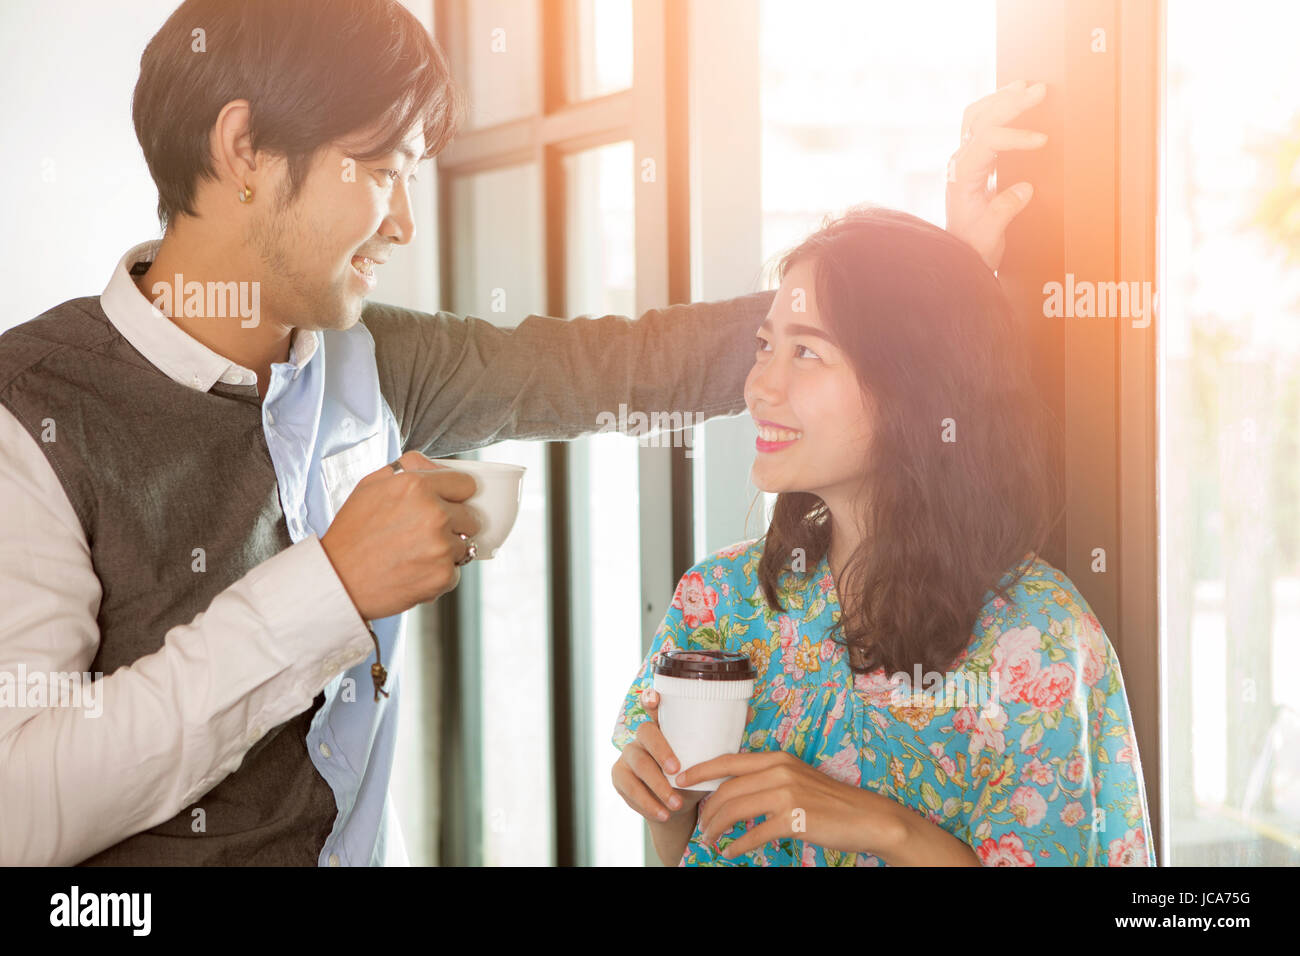 couples of younger asian man and woman with coffee cup in hand toothy smiling face happiness and relaxing discussing - Stock Image